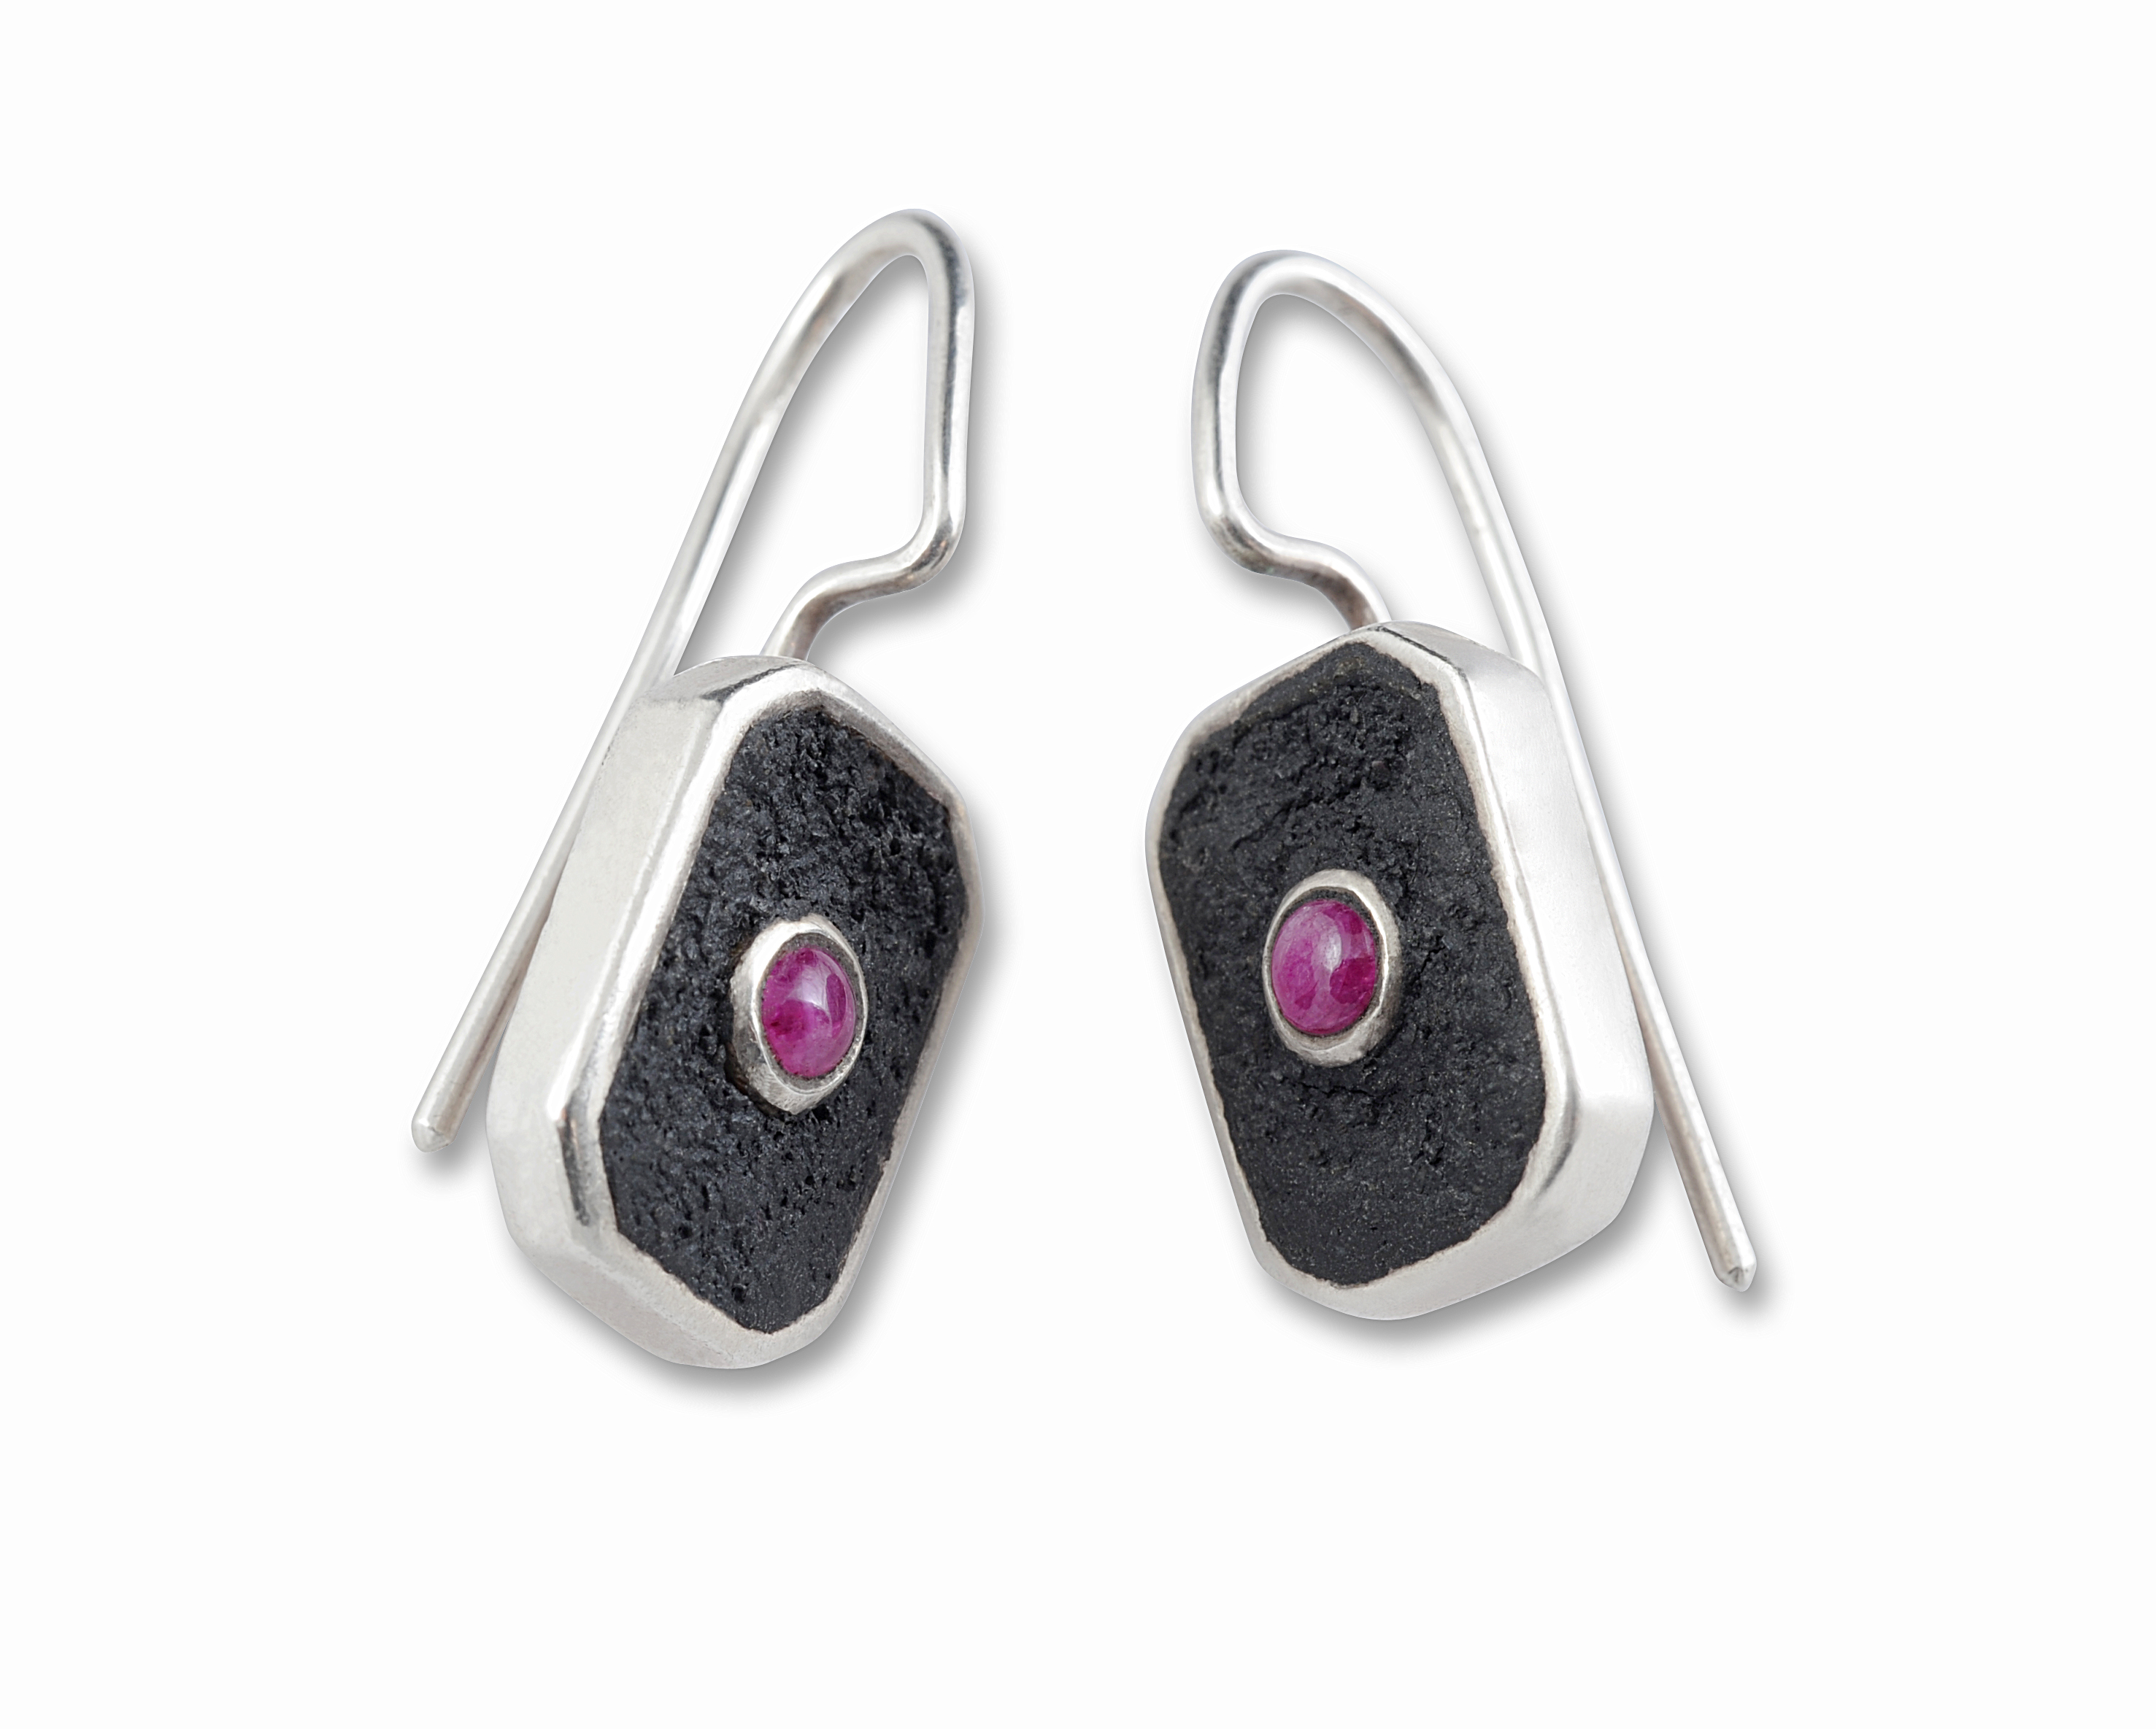 Redesigned ruby earrings